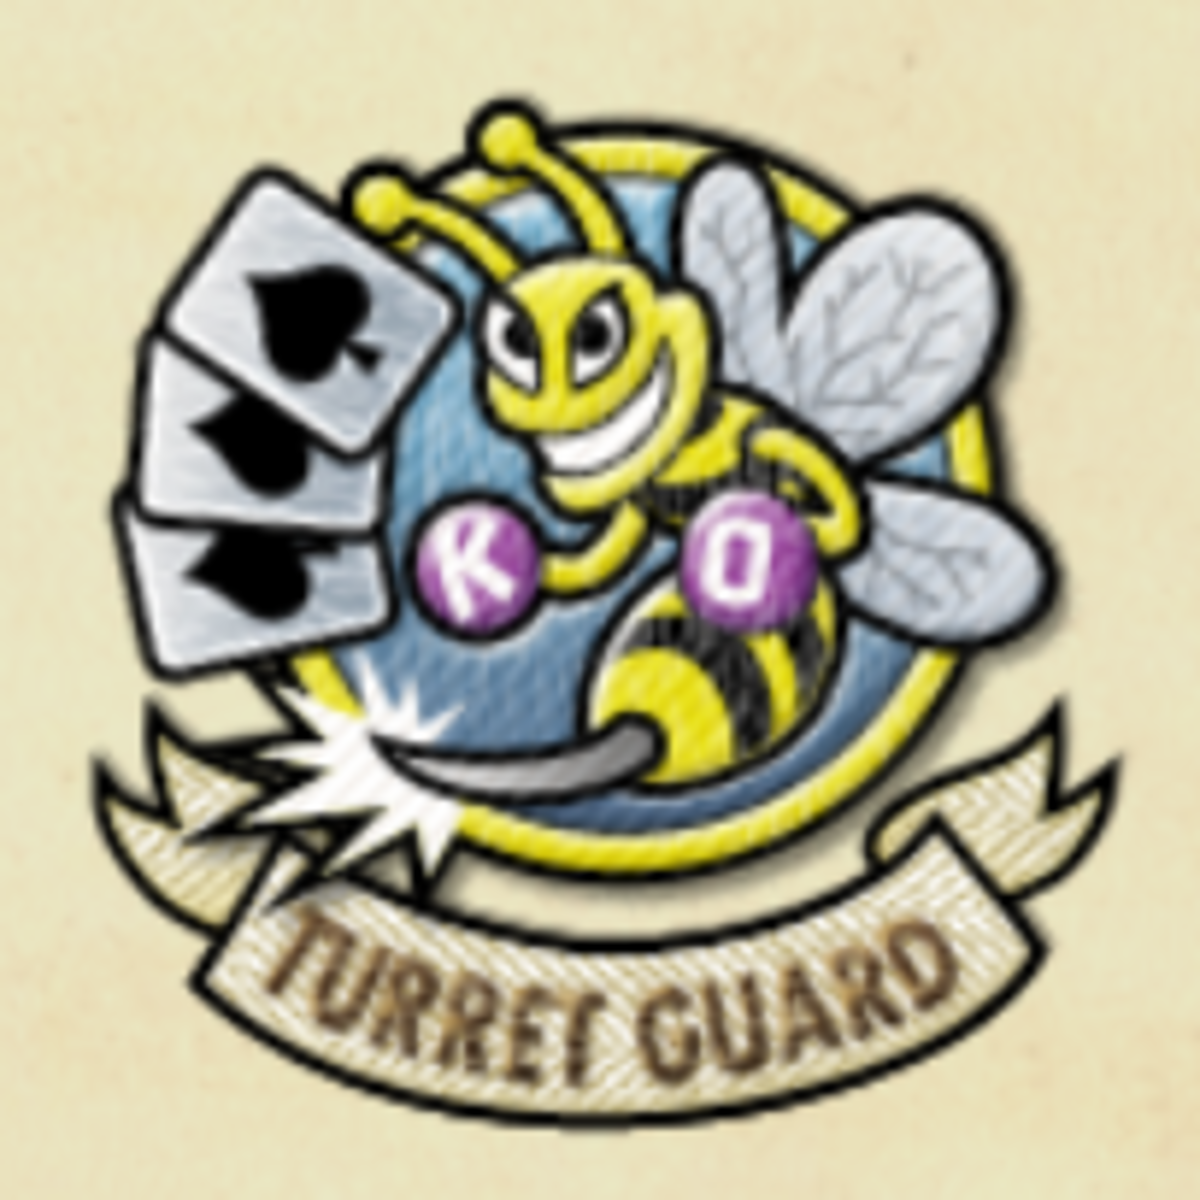 Turret Guard medal.